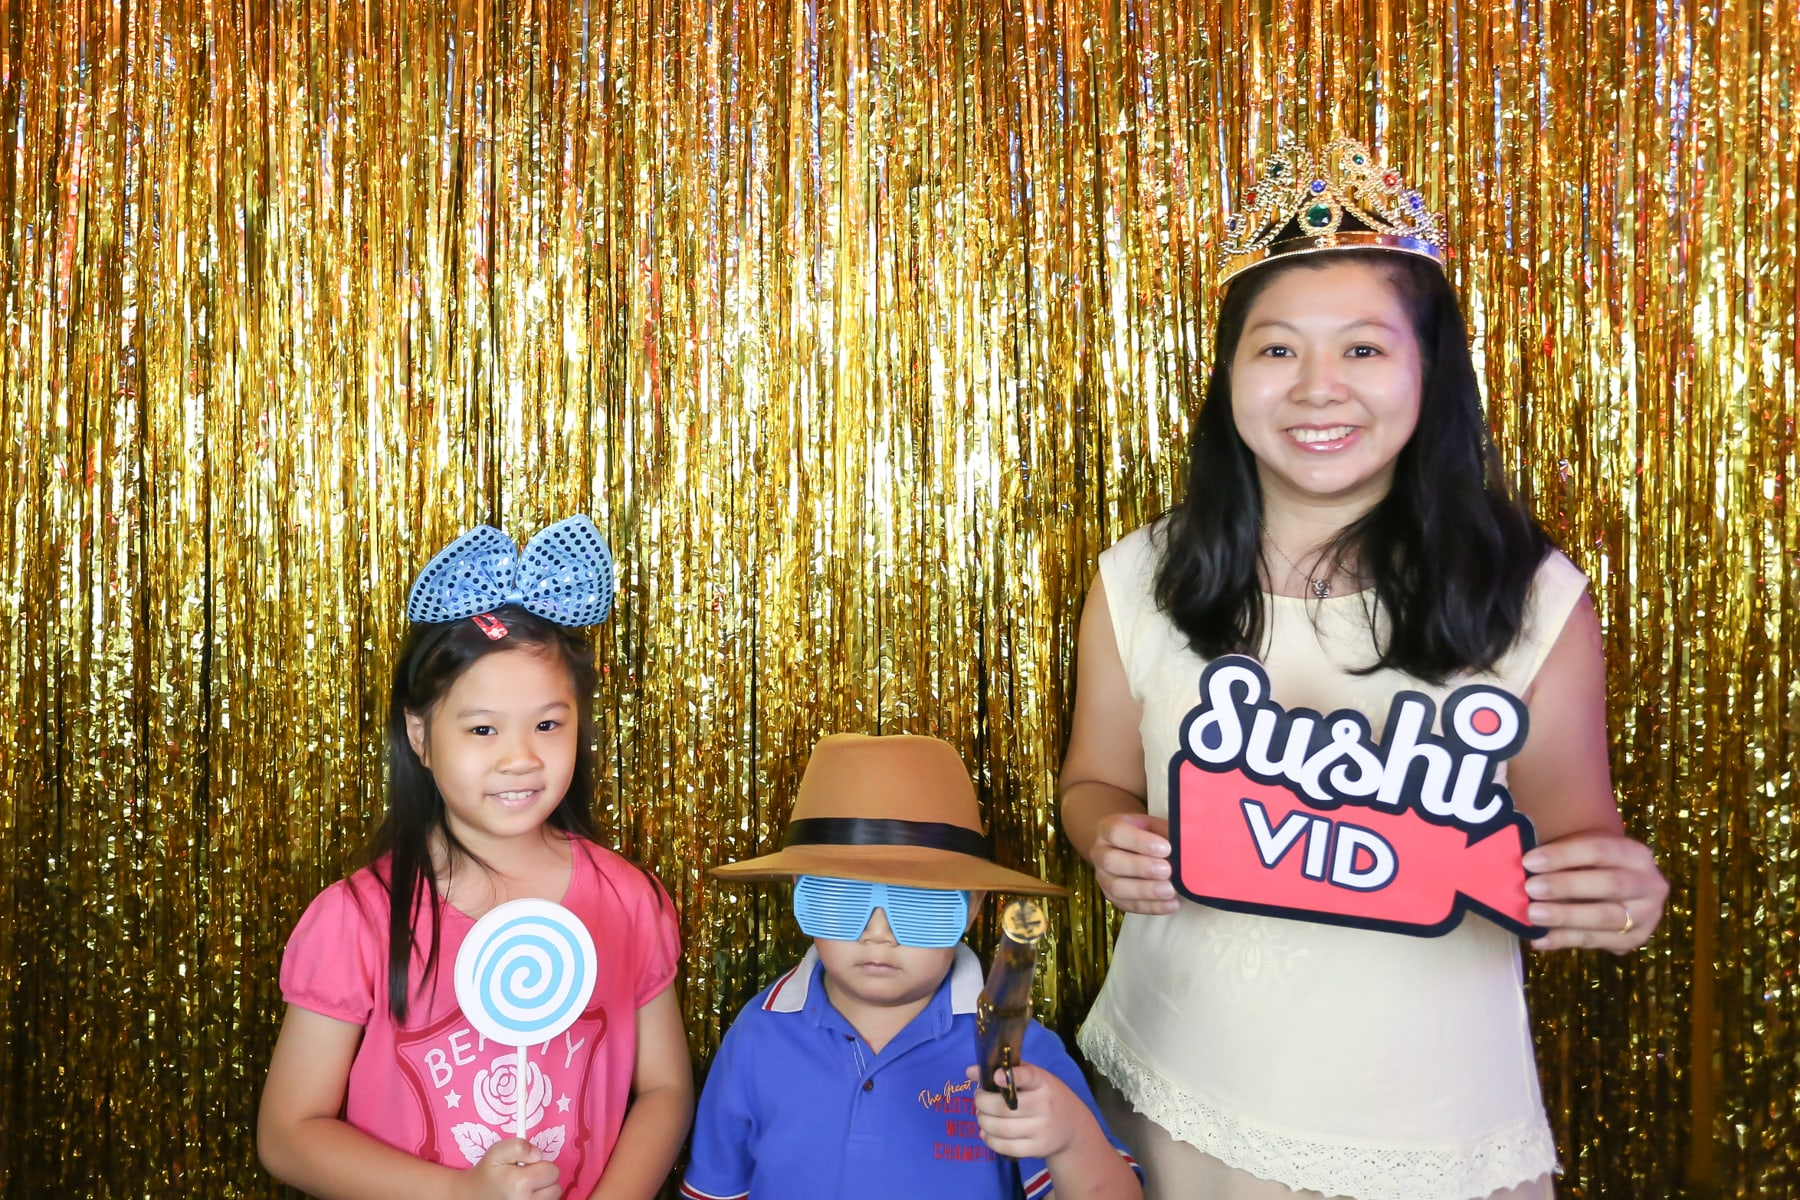 Sushivid+crunch+tagbooth+82